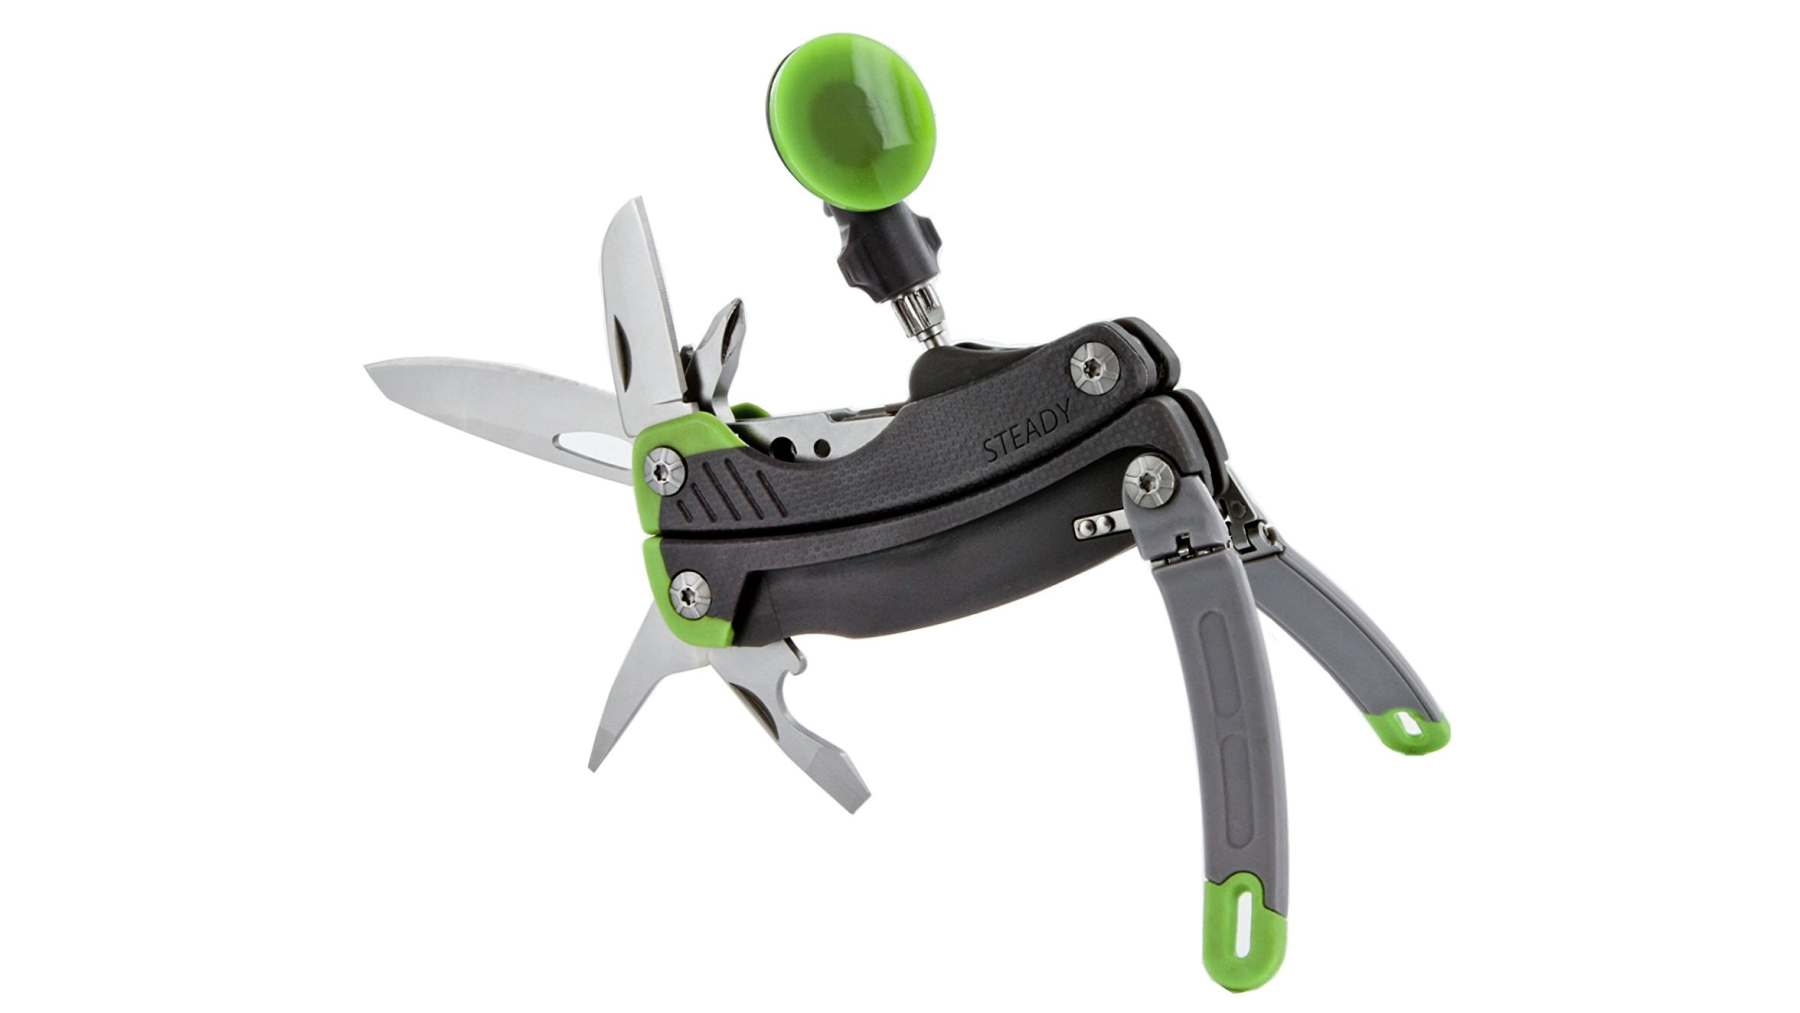 Useful photography tools: the Gerber multitool